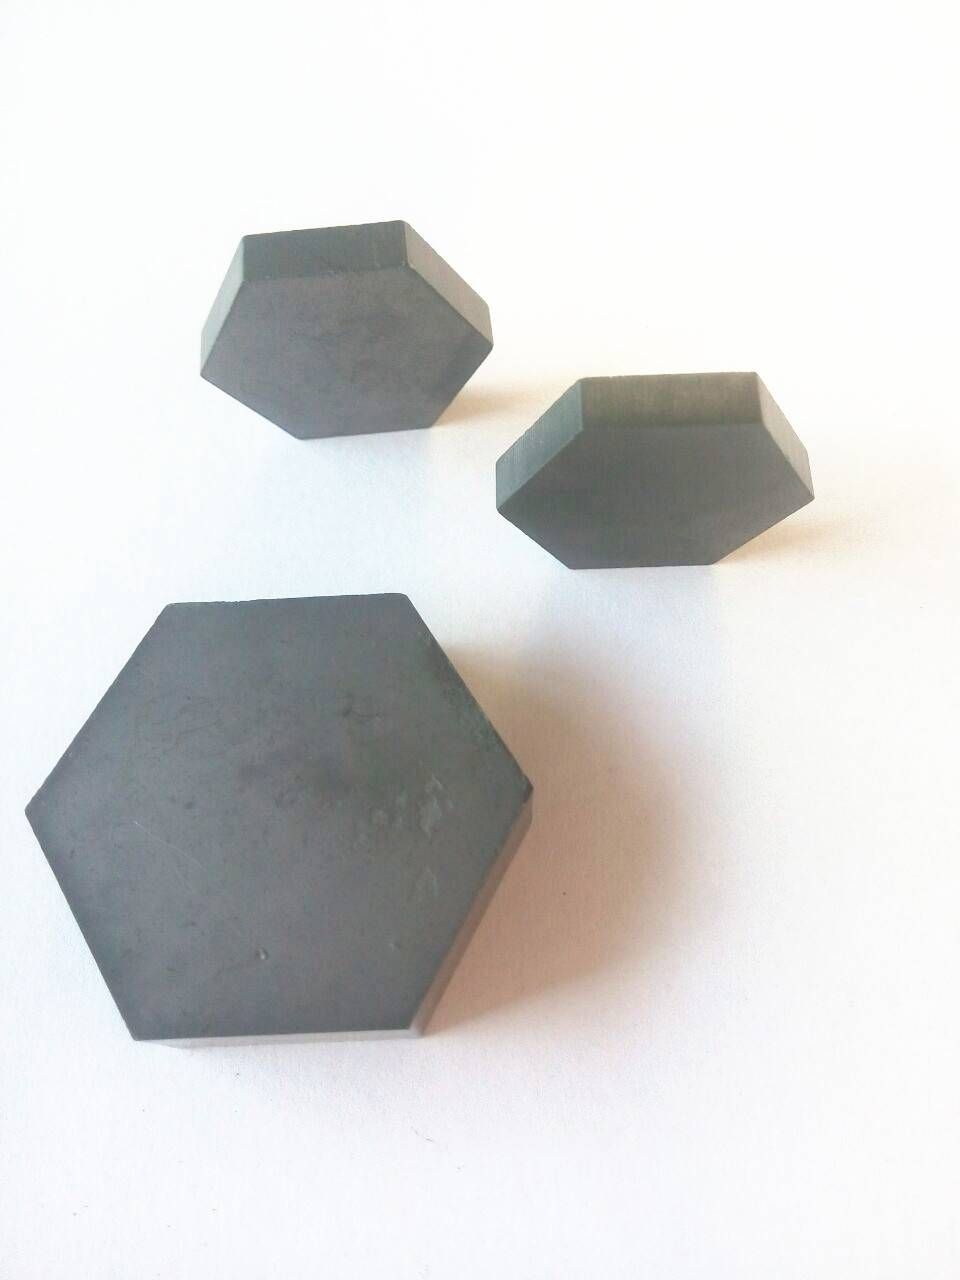 sintered silicon carbide tiles for armor bulletproof